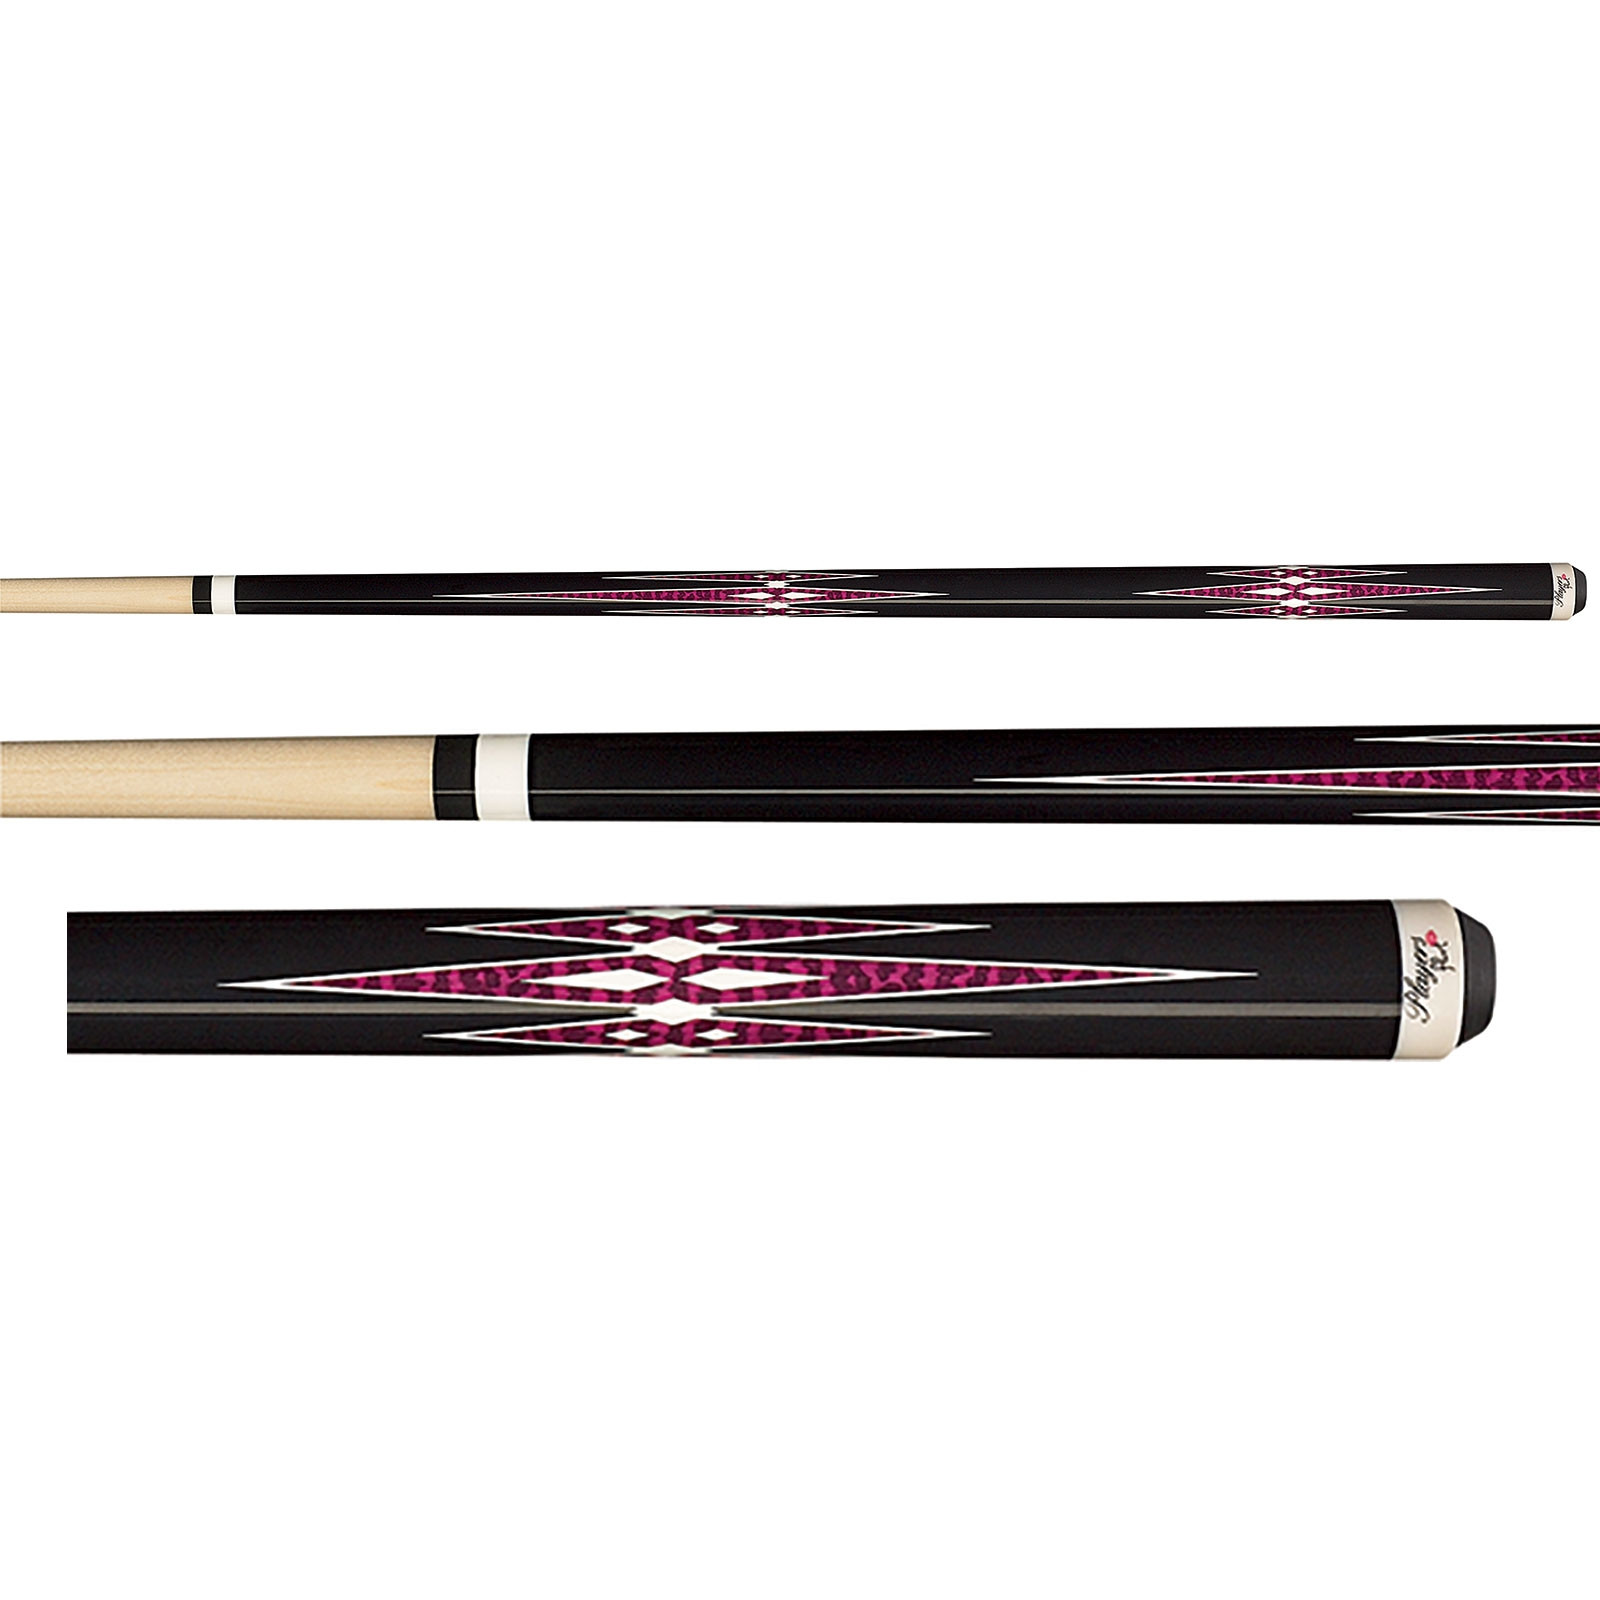 Players F-2600 Flirt Barely Legal Women's Pool Cue Stick